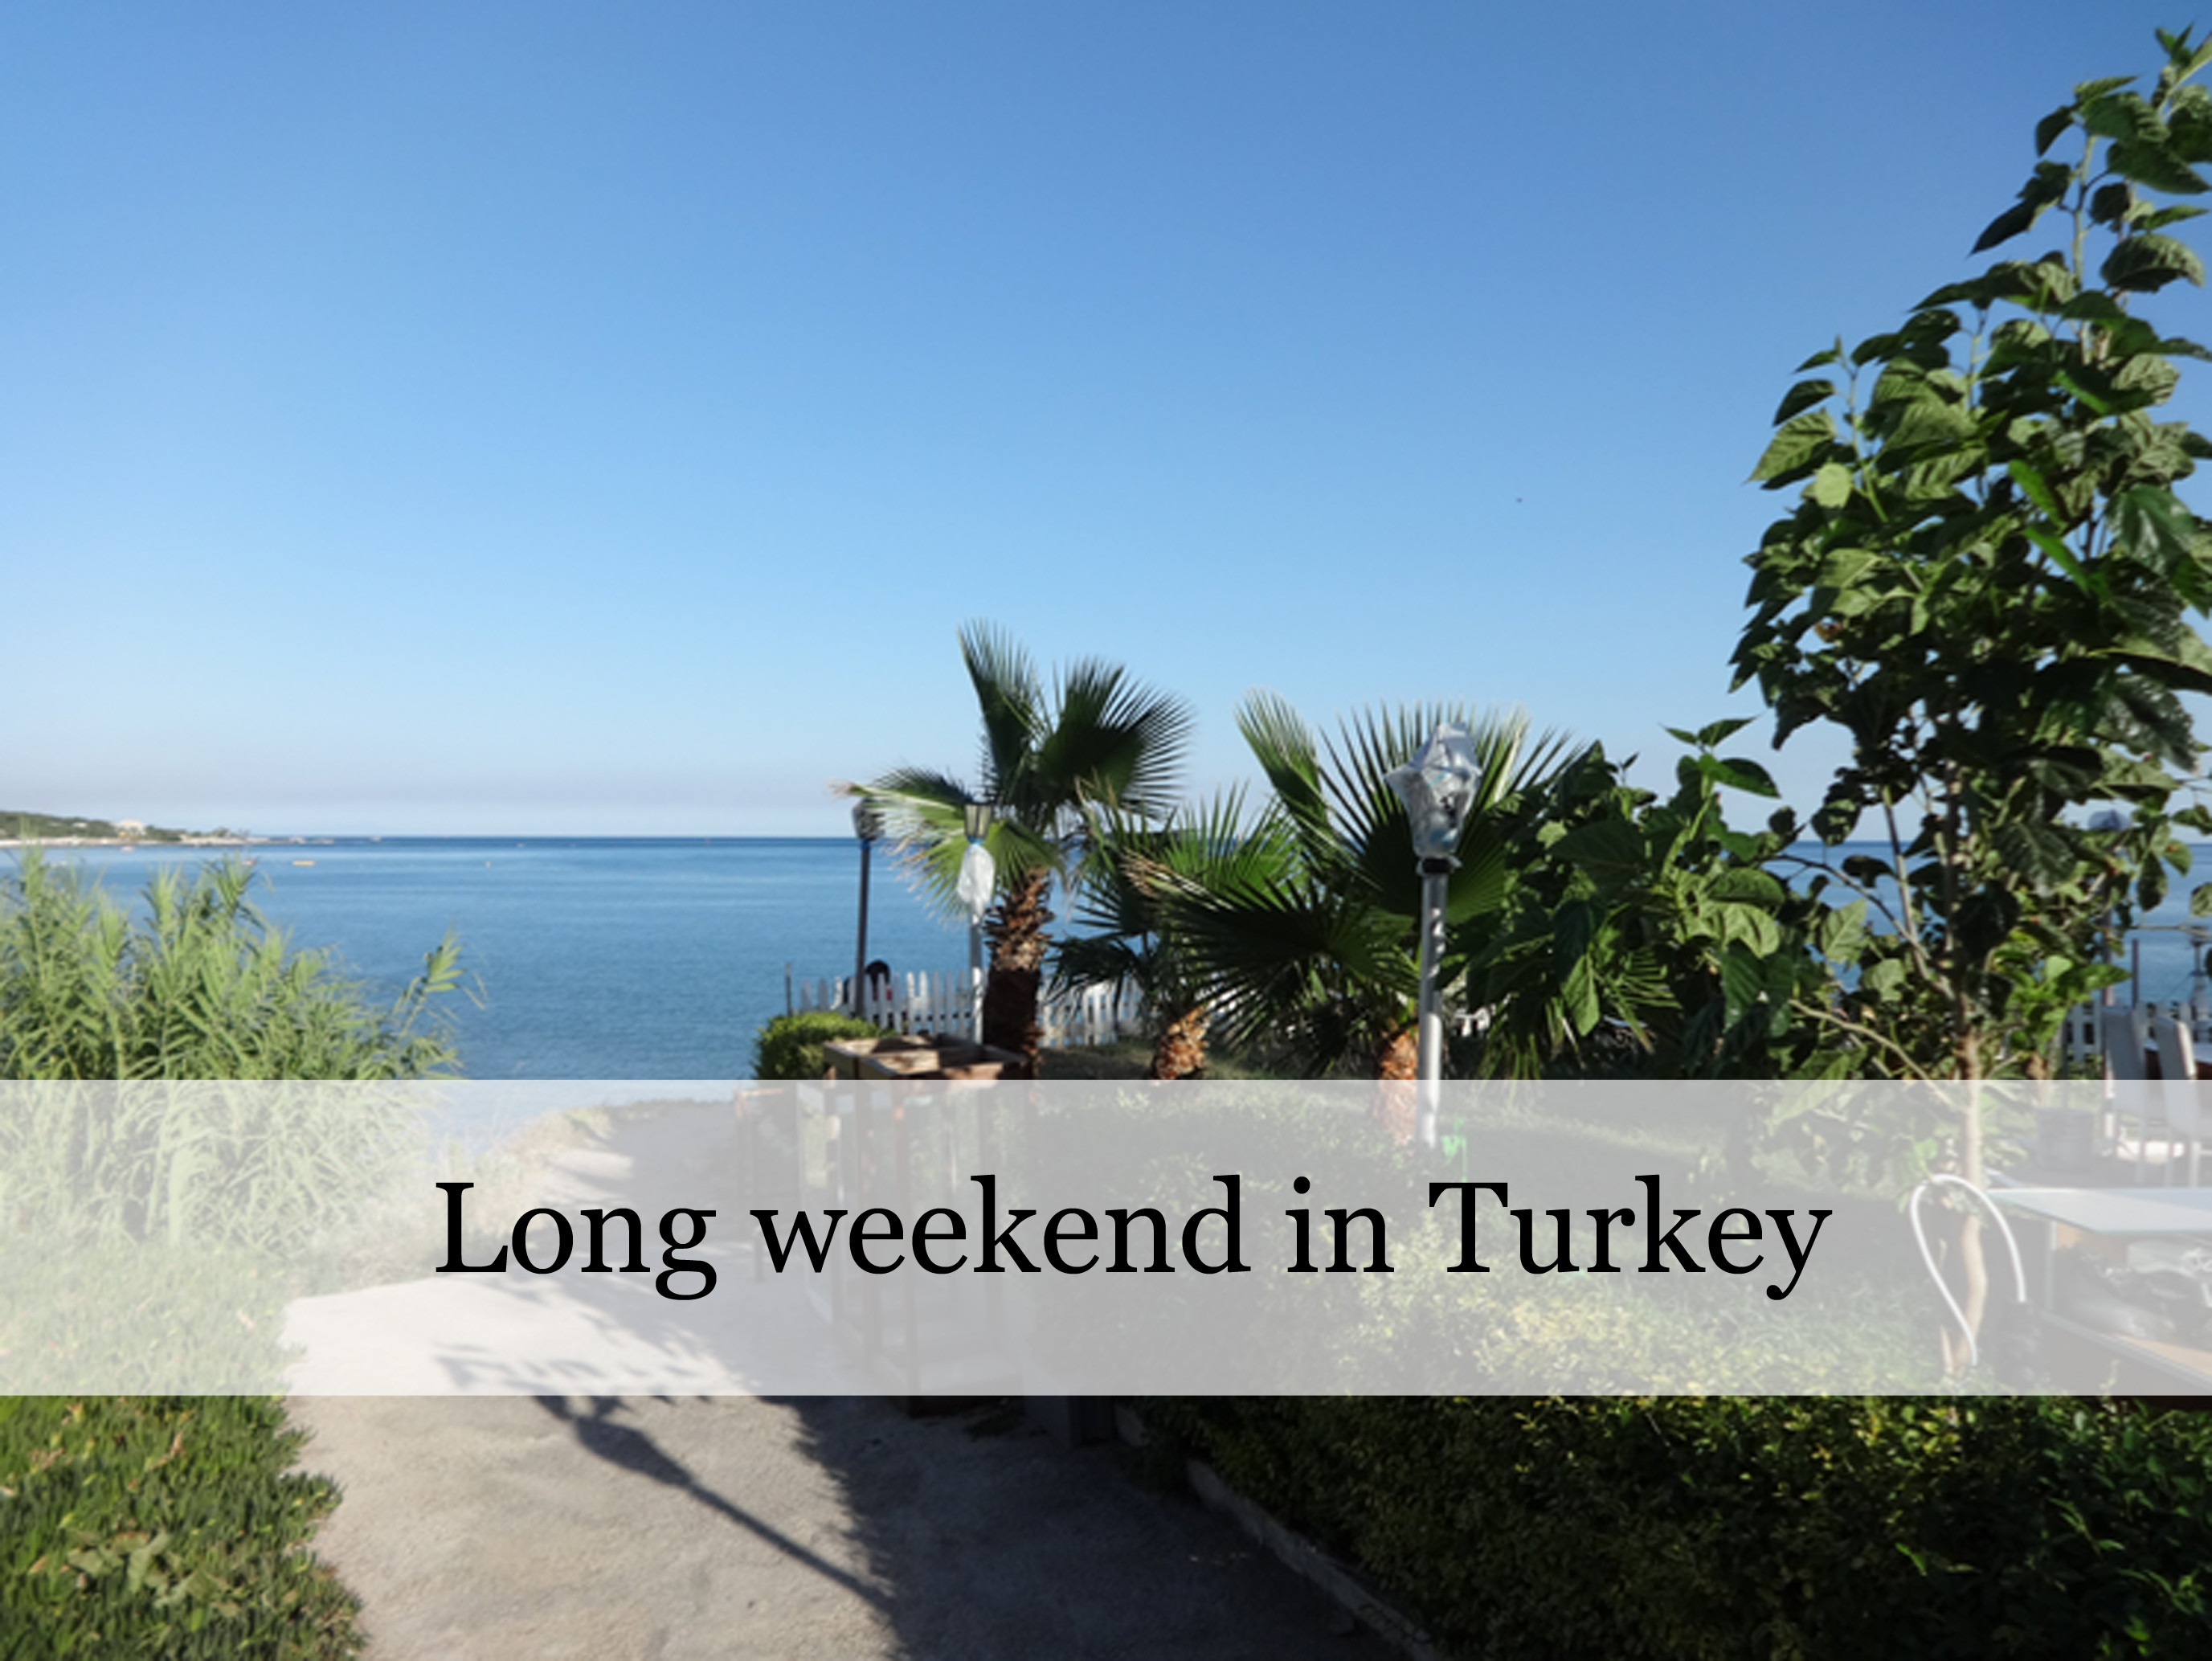 Turkey_Business and Holiday in Turkey_longweekend2_ProjectAbroad.Eu